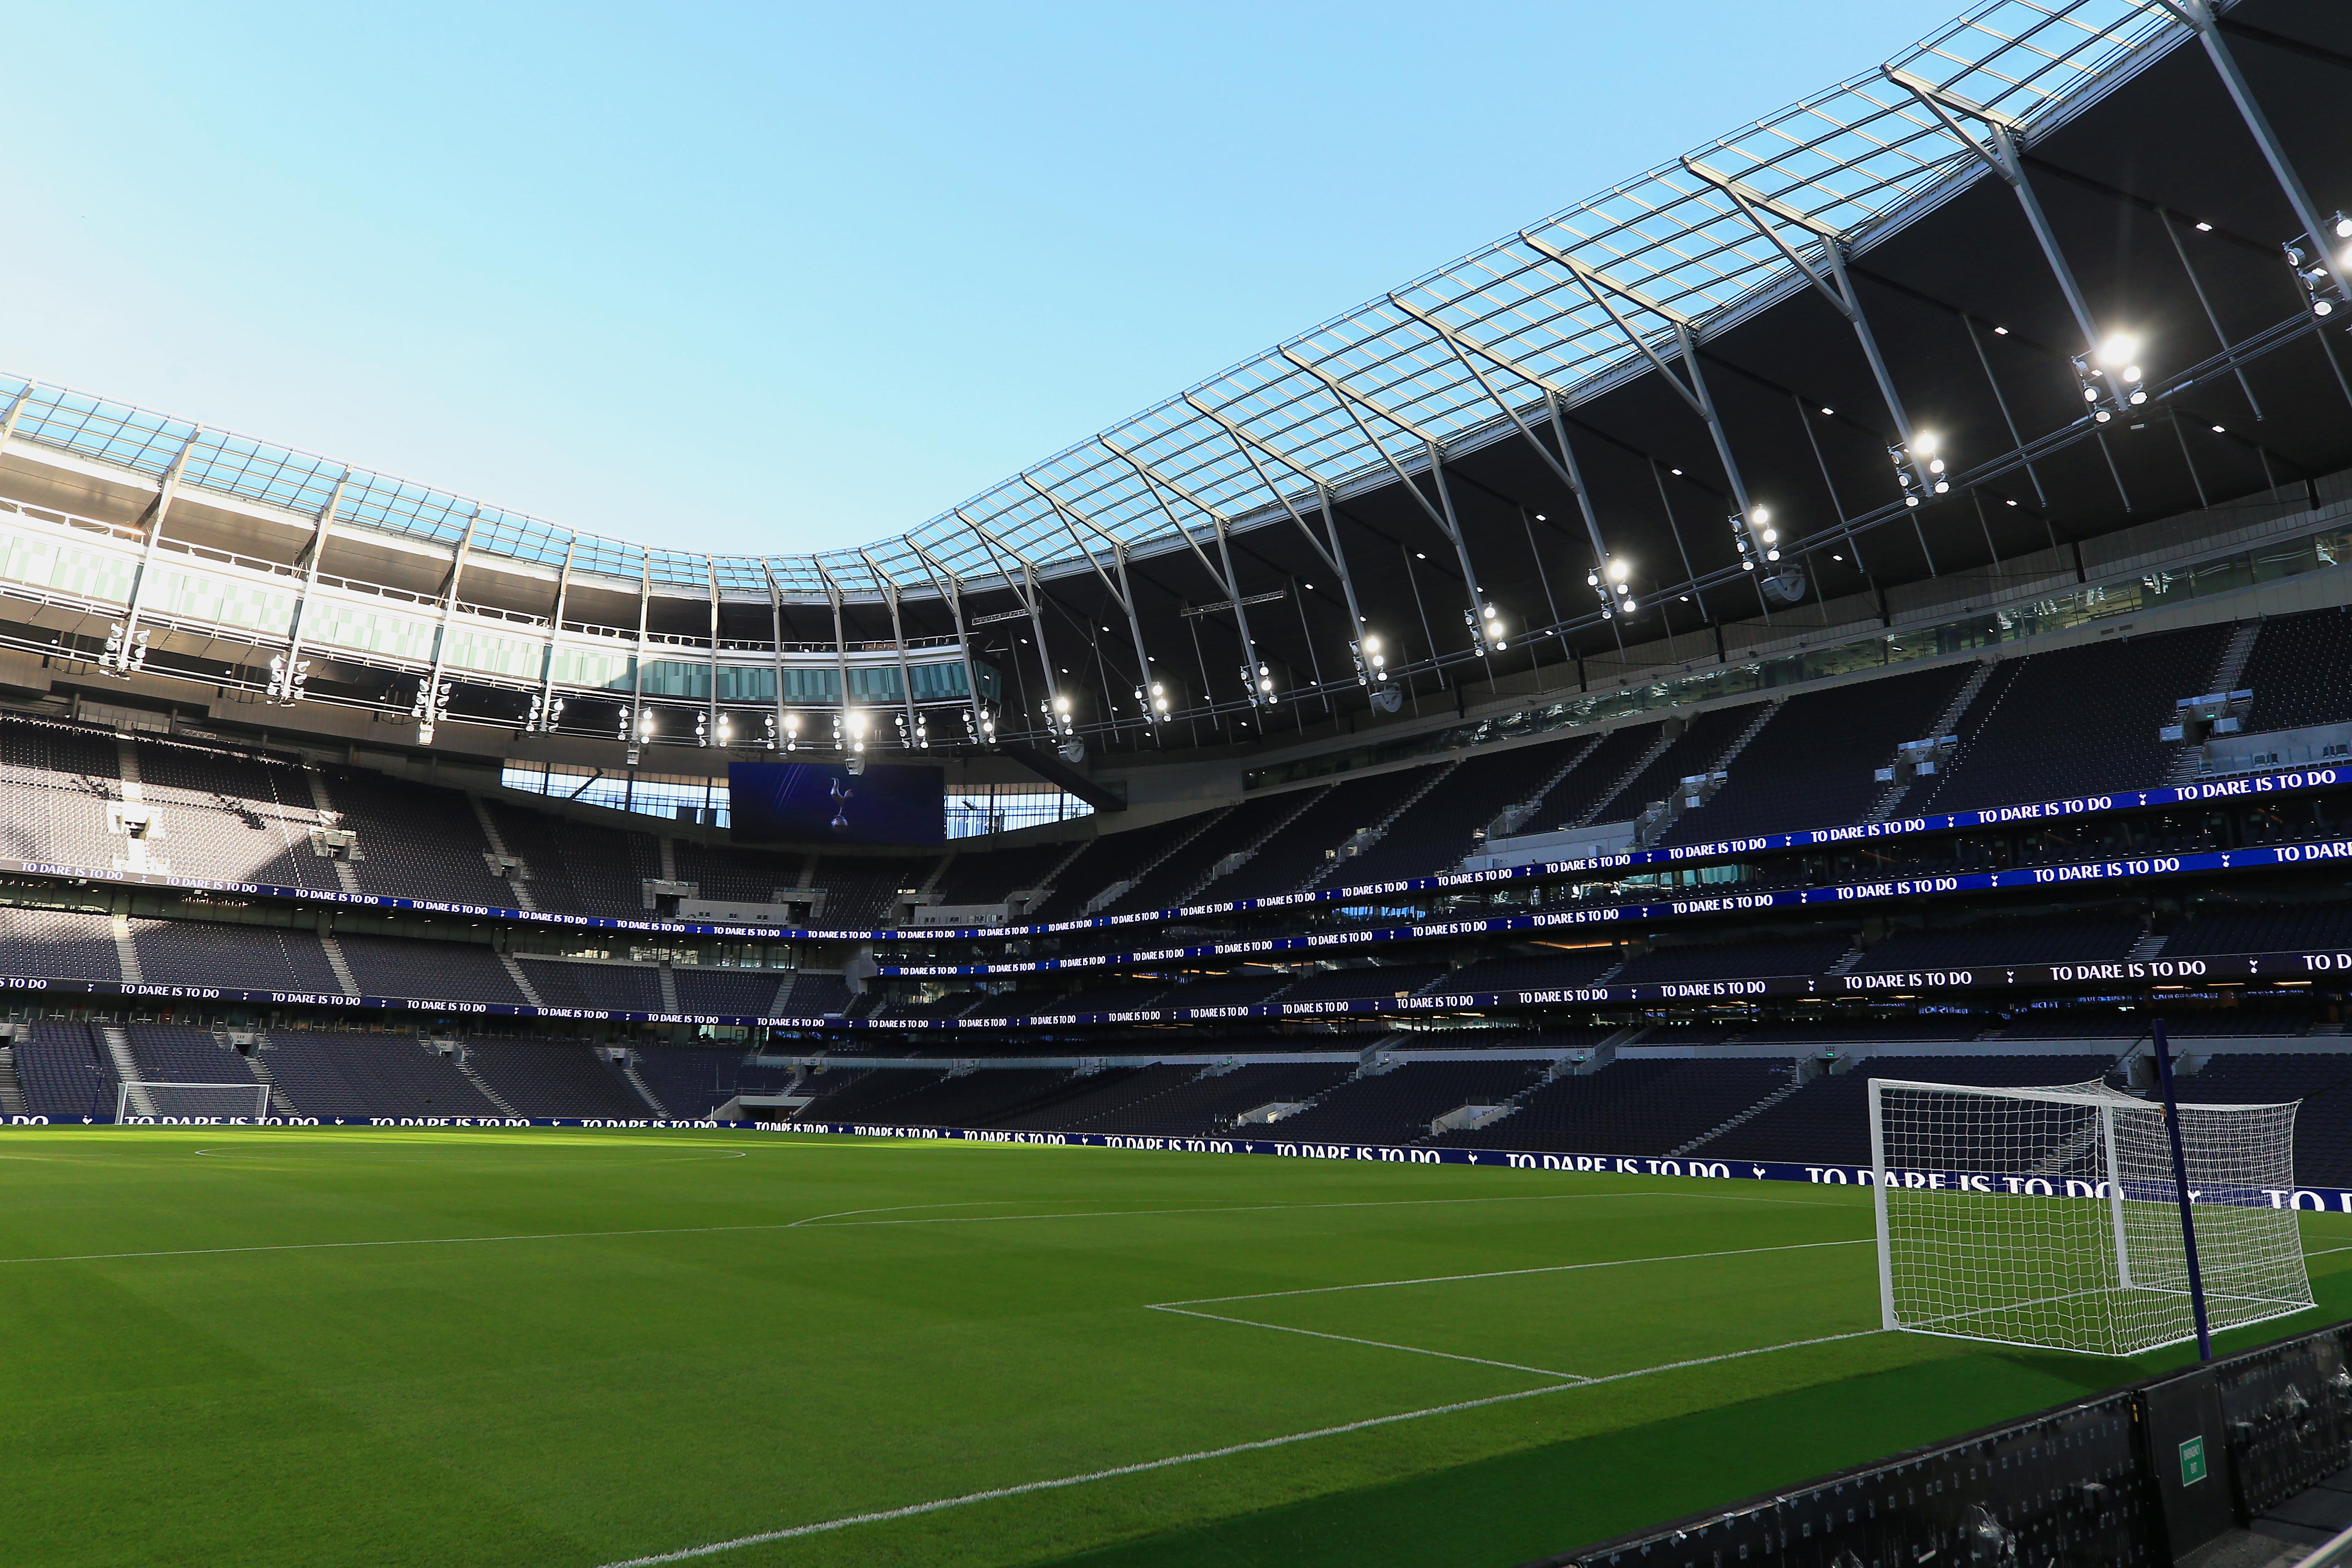 <p>A general view of inside the new stadium during the Tottenham Hotspur New Stadium Fan Event on December 15, 2018 in  London,United Kingdom. (Photo by Tottenham Hotspur FC/Tottenham Hotspur FC via Getty Images)</p>